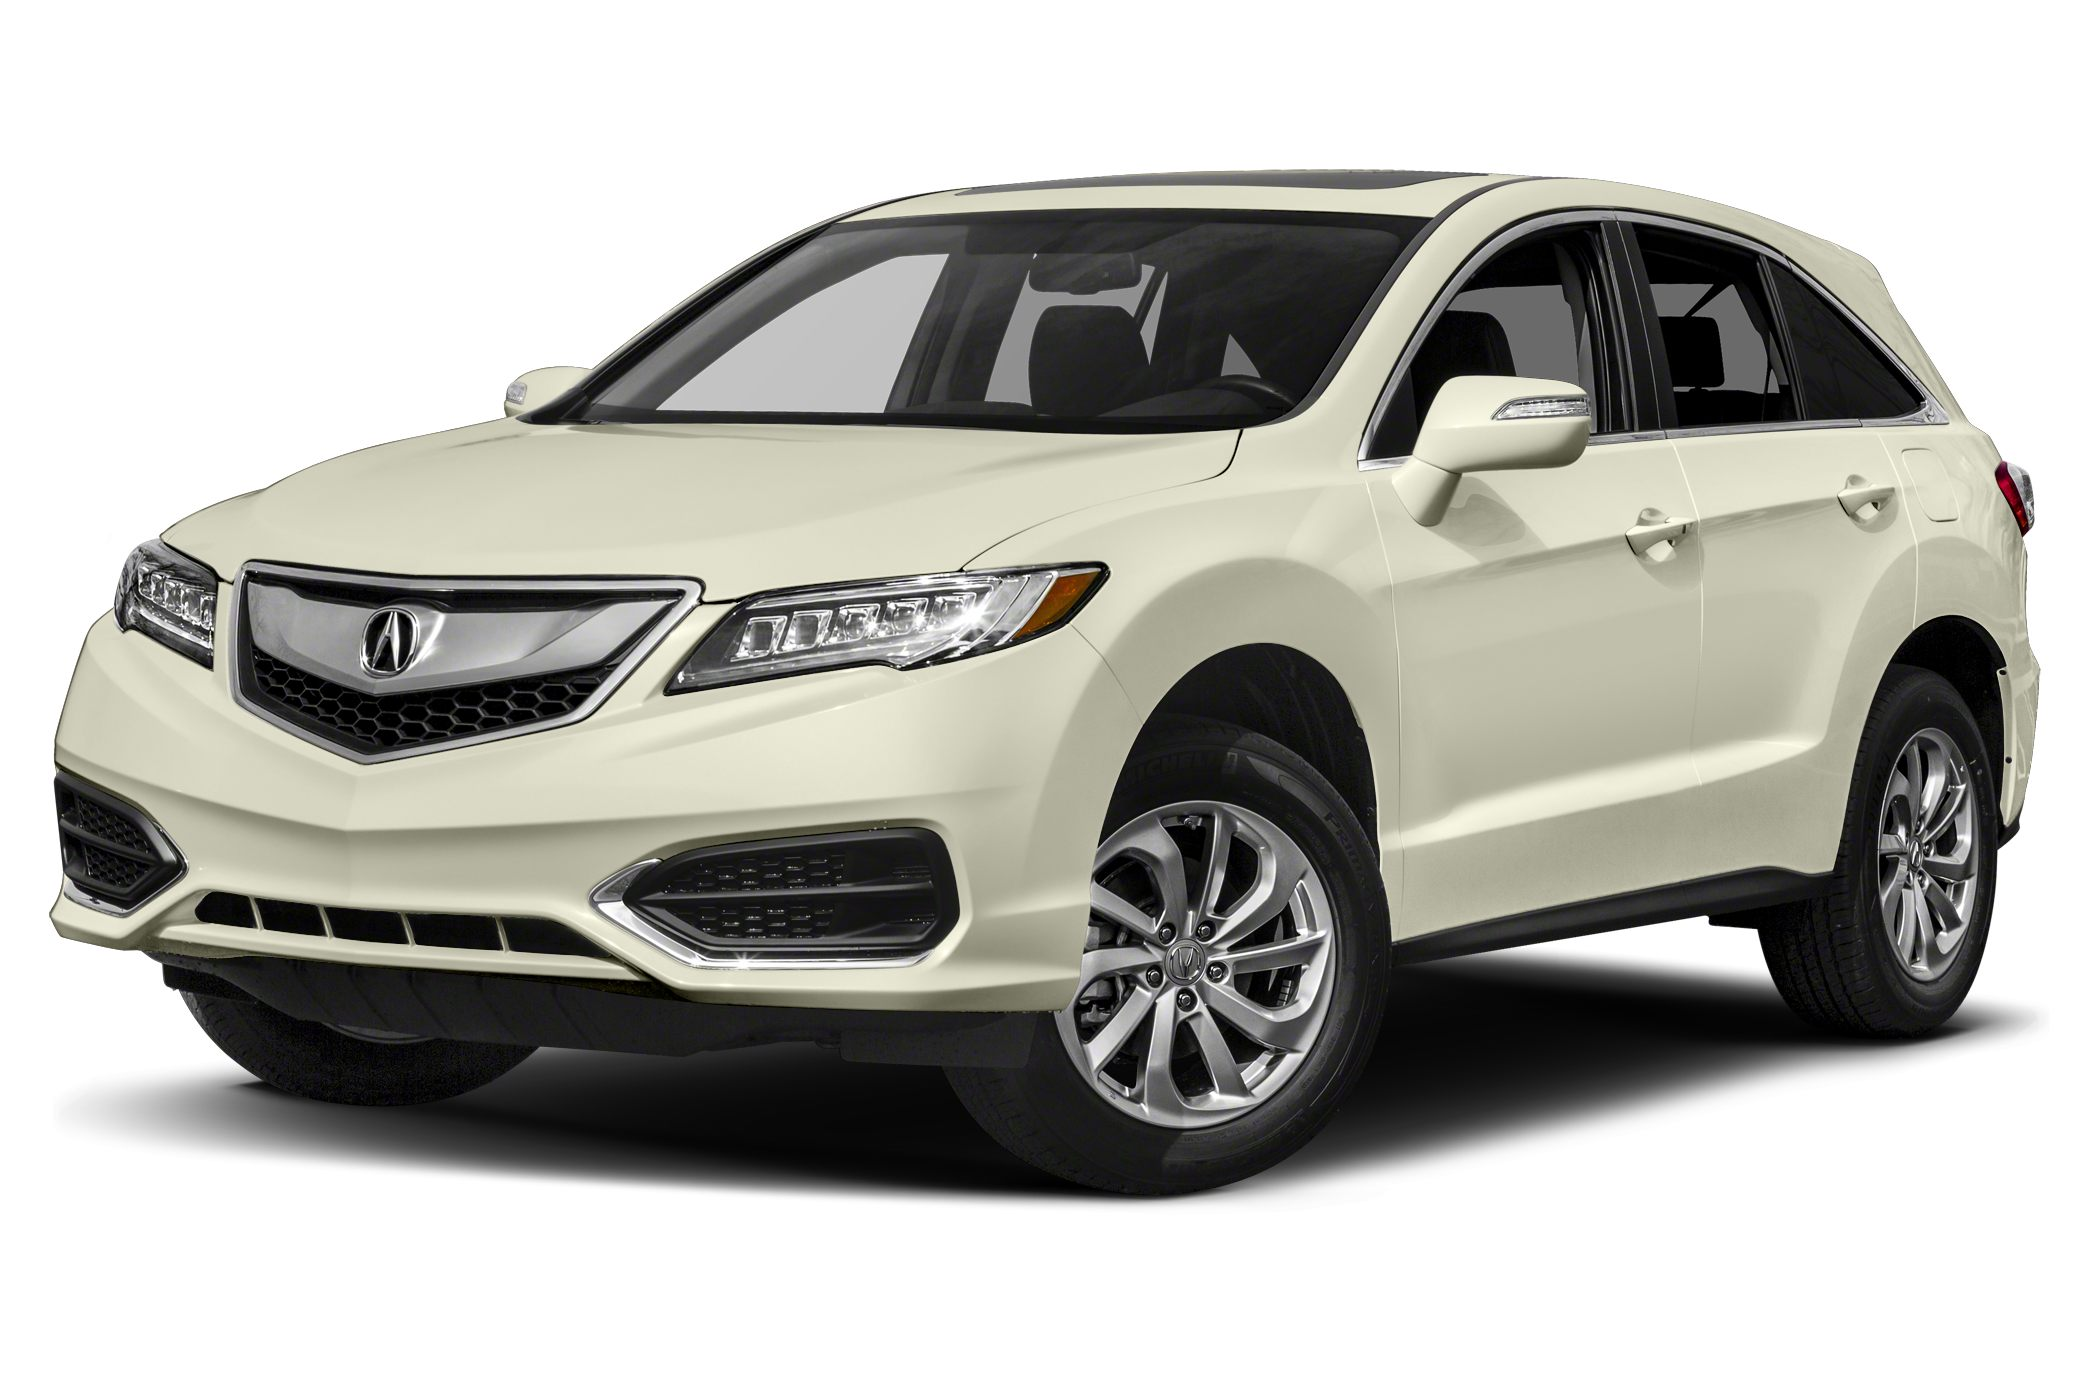 acurazine accessories here acura is click rdx mdx module it on where hfl of fresh